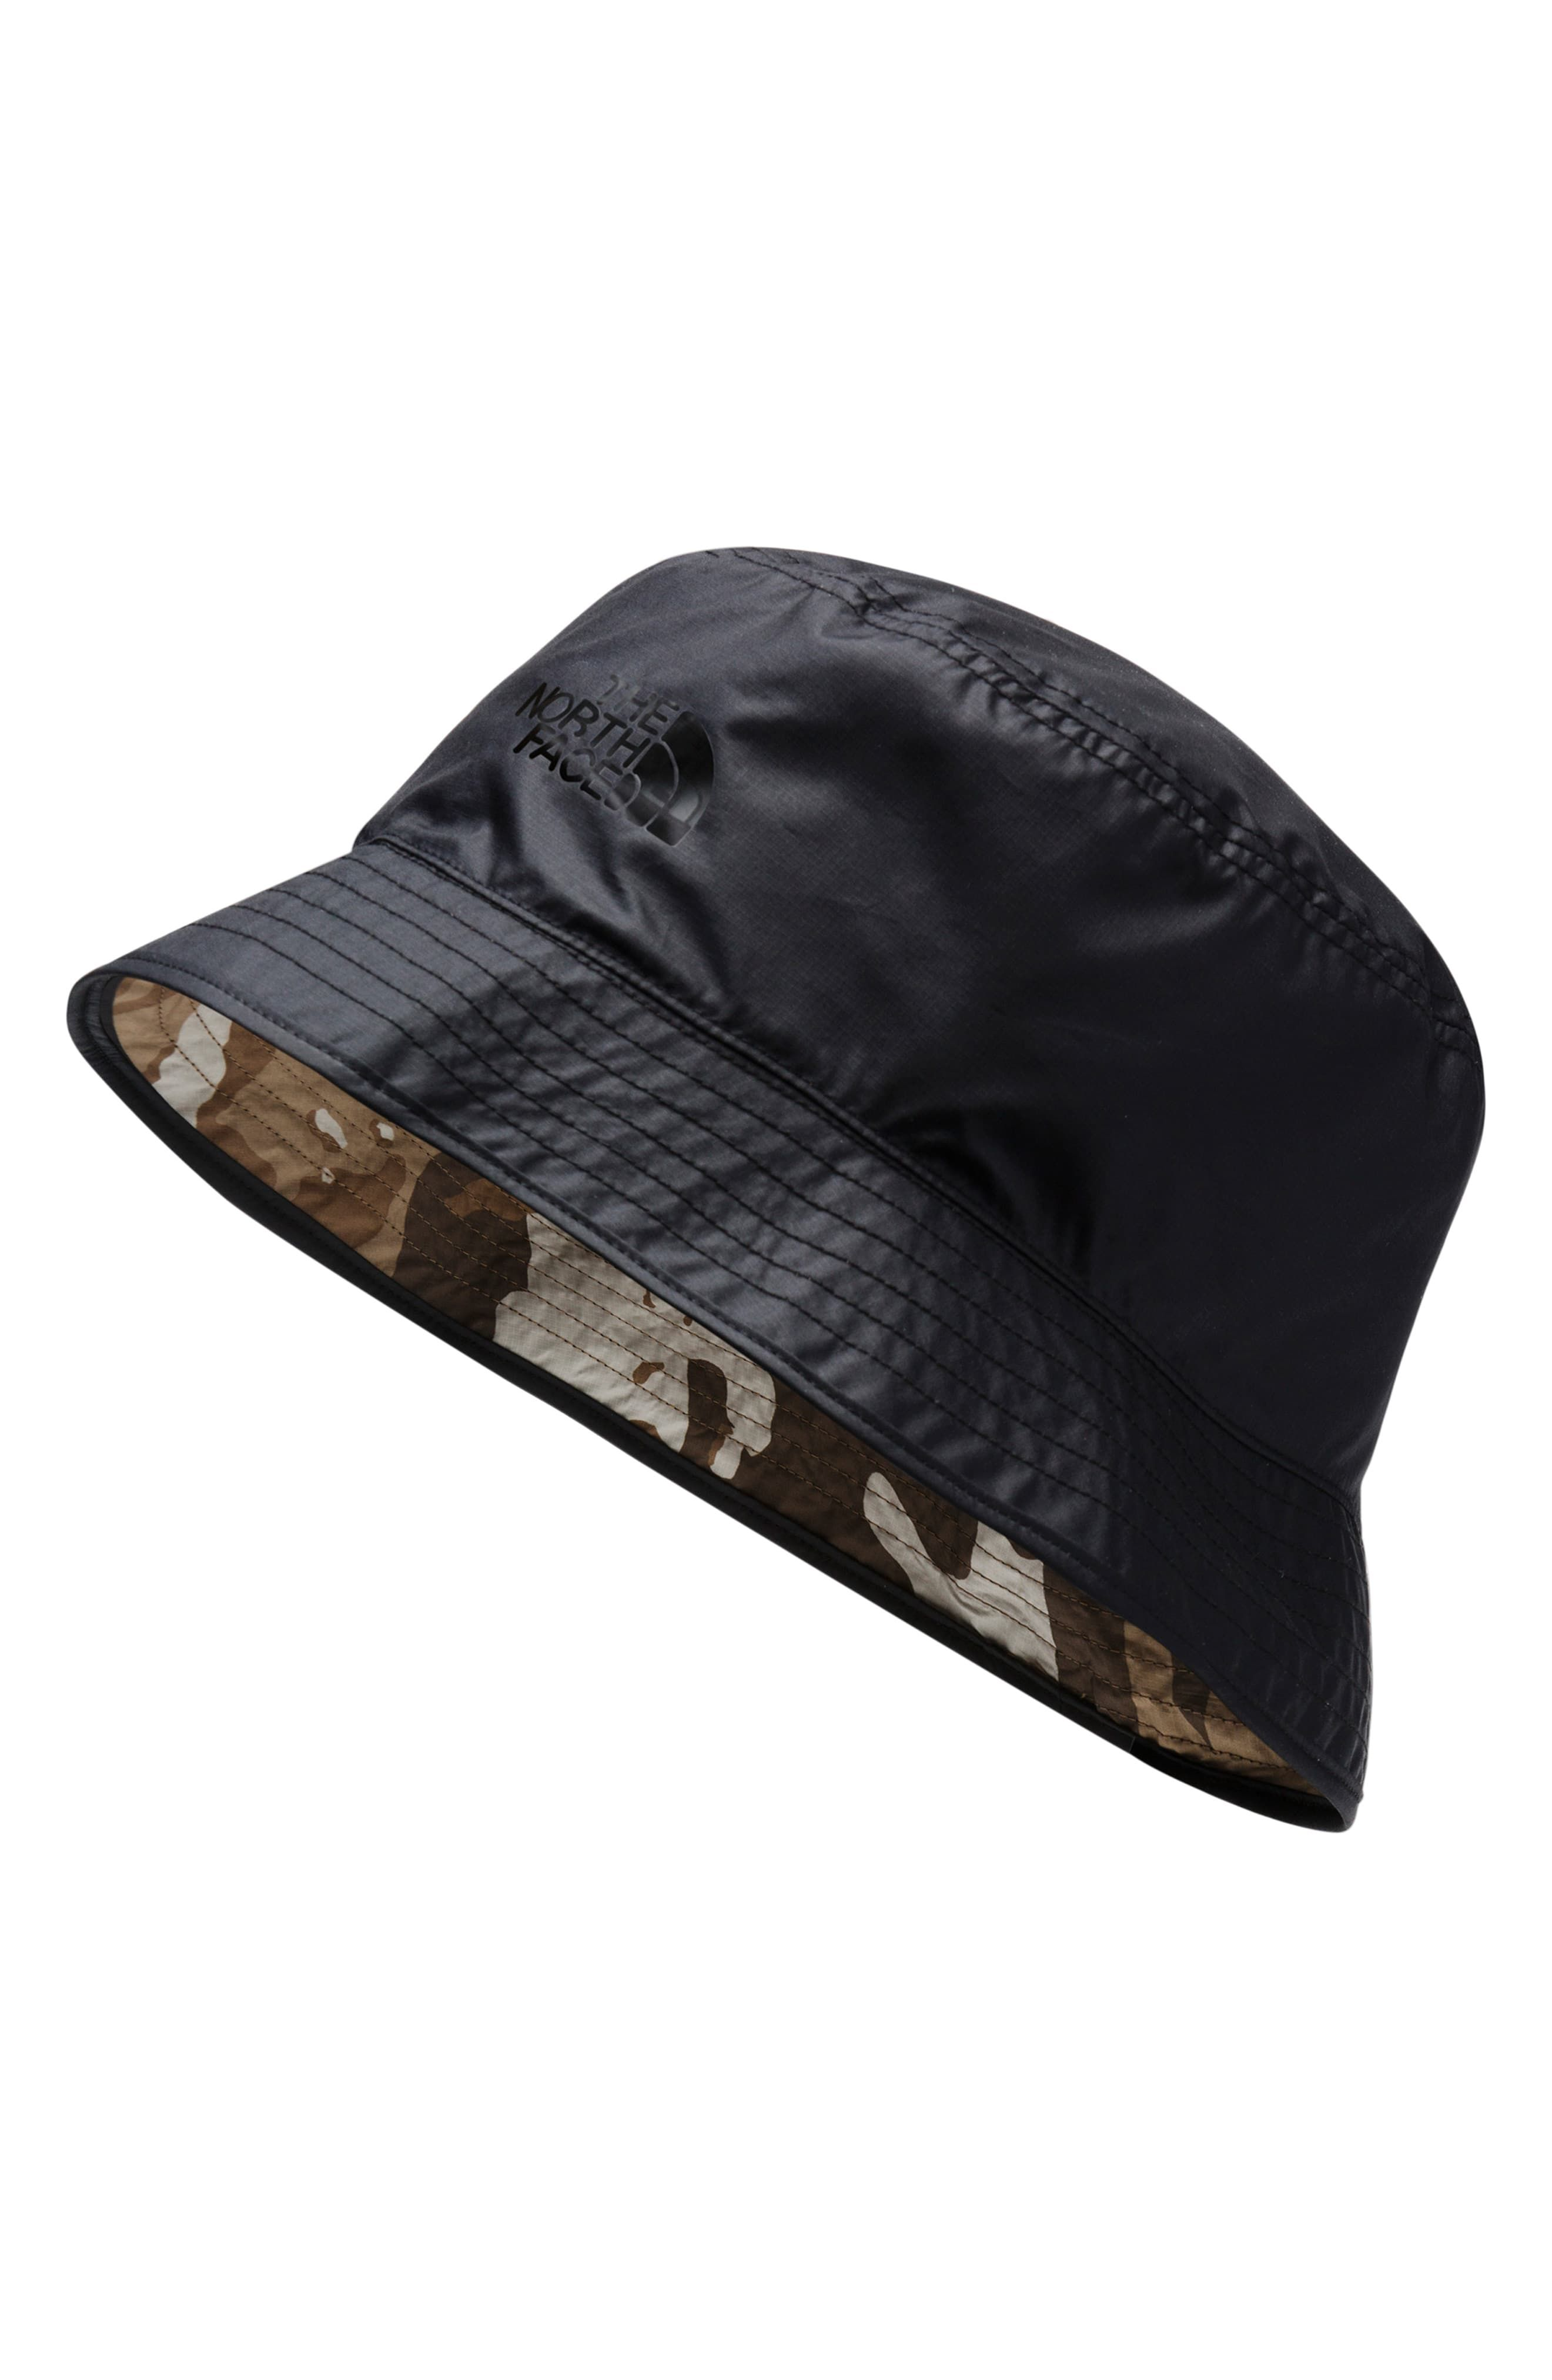 74752a3a1 The North Face Sun Stash Reversible Bucket Hat in 2019 | Products ...